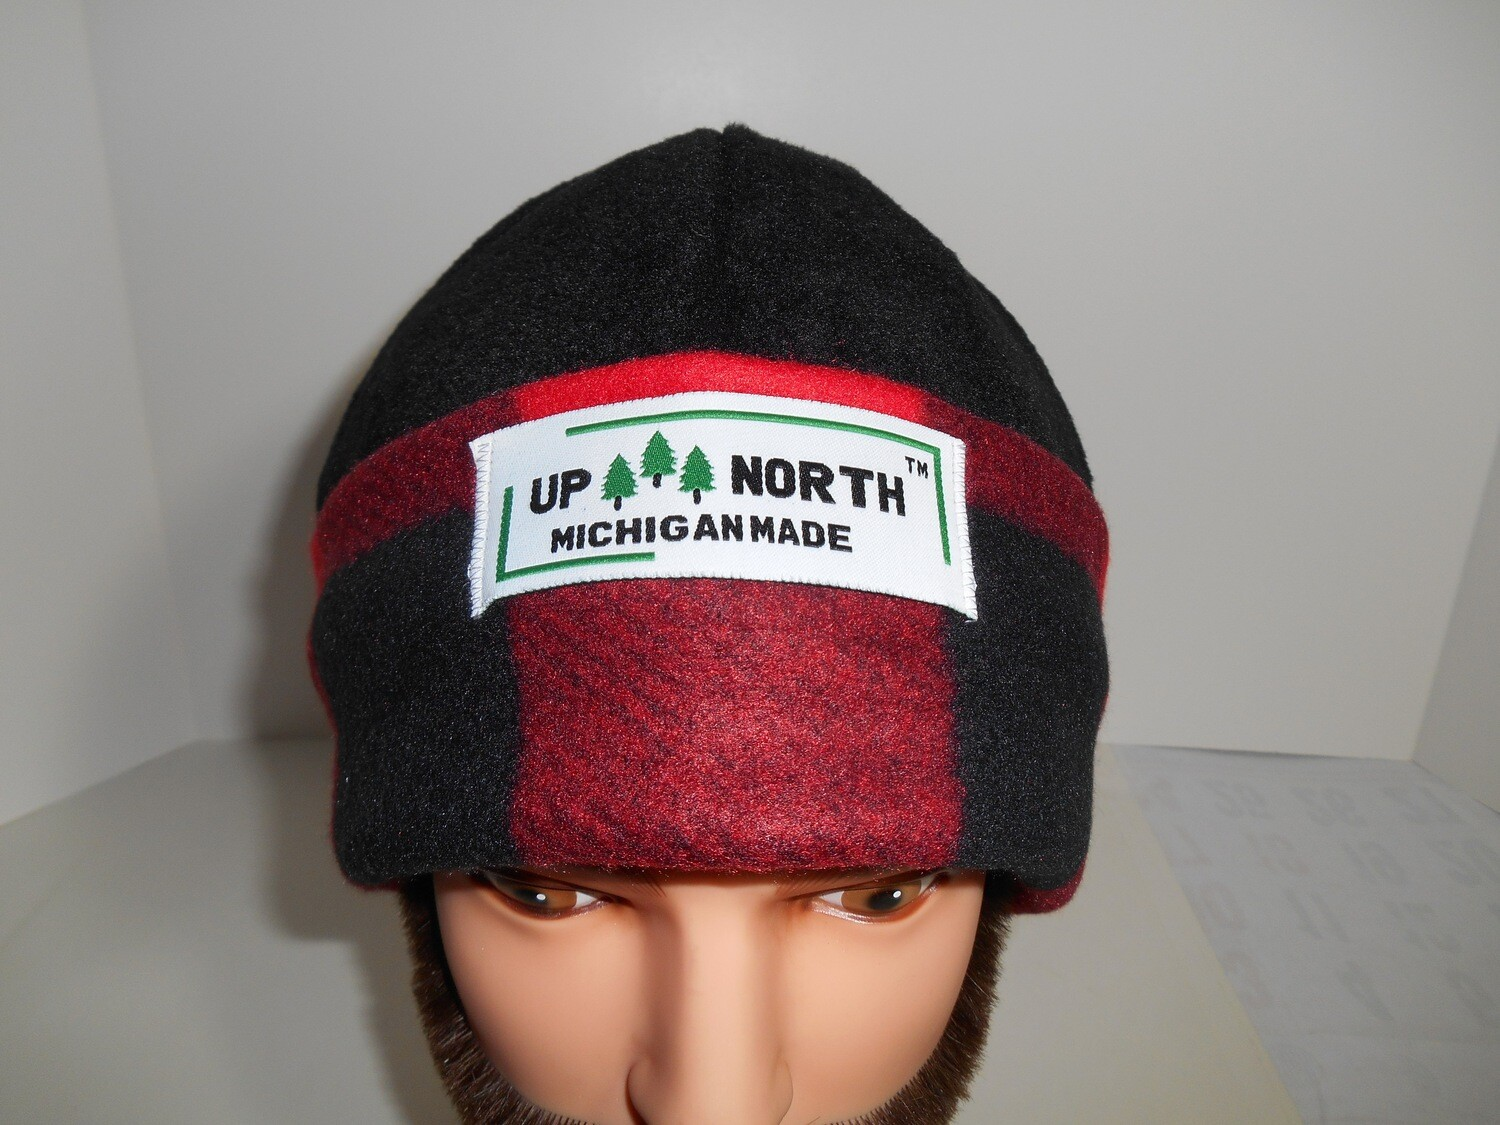 Large Red Plaid with Black Dome Winter Hat with Face Cover